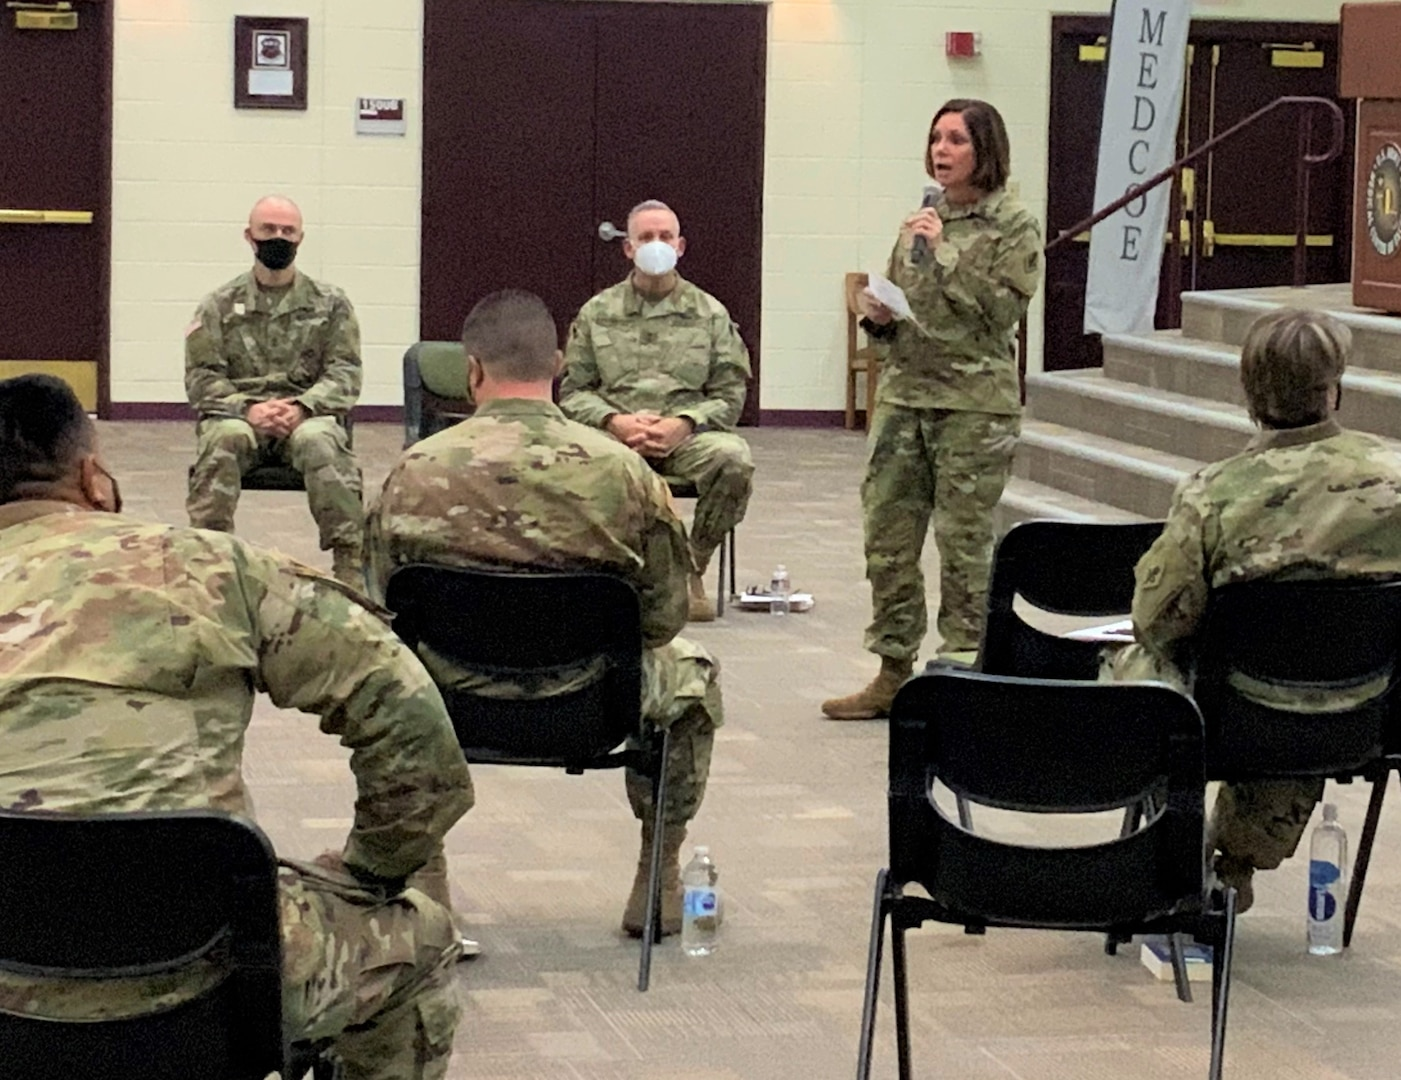 Col. Caryn Vernon, U.S. Army Medical Center of Excellence G3, outlined the purpose and way ahead for the program during a MEDCoE Leader Professional Development session on the Foundations of Leadership at the Blesse Auditorium at Joint Base San Antonio-Fort Sam Houston Oct. 28. The event was attended by nearly 100 virtual and in-person attendees, using COVID-19 mitigation measures.